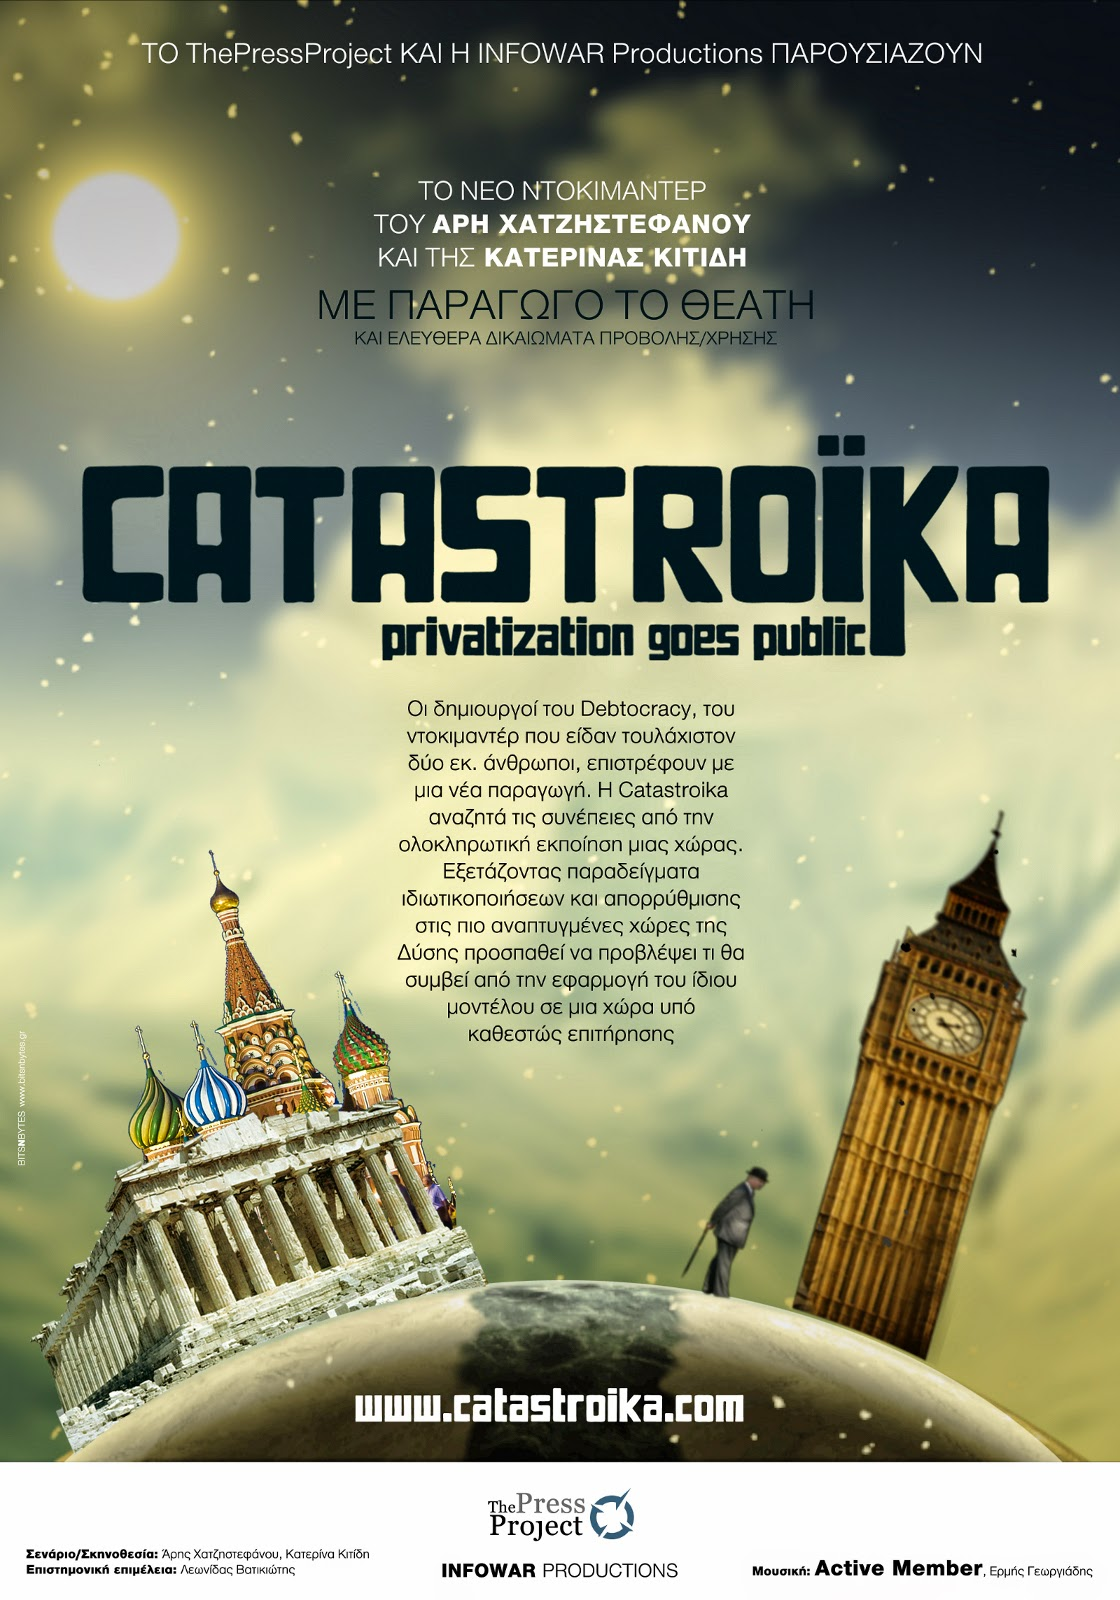 Катастройка / Catastroika (2012